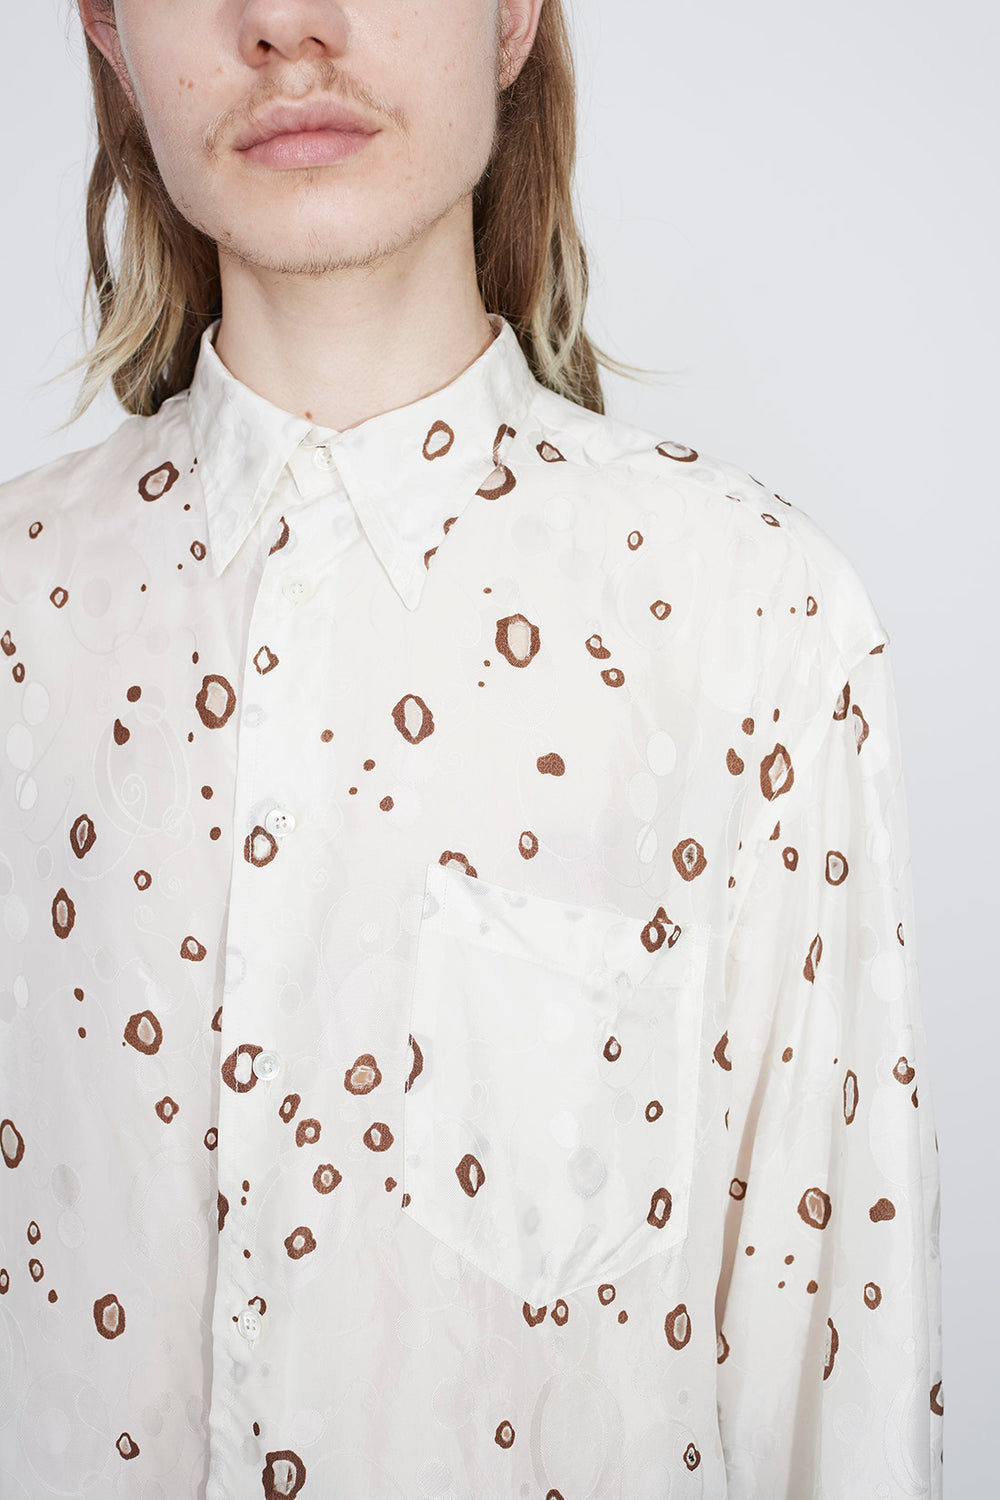 Bas burnout shirt white/brown